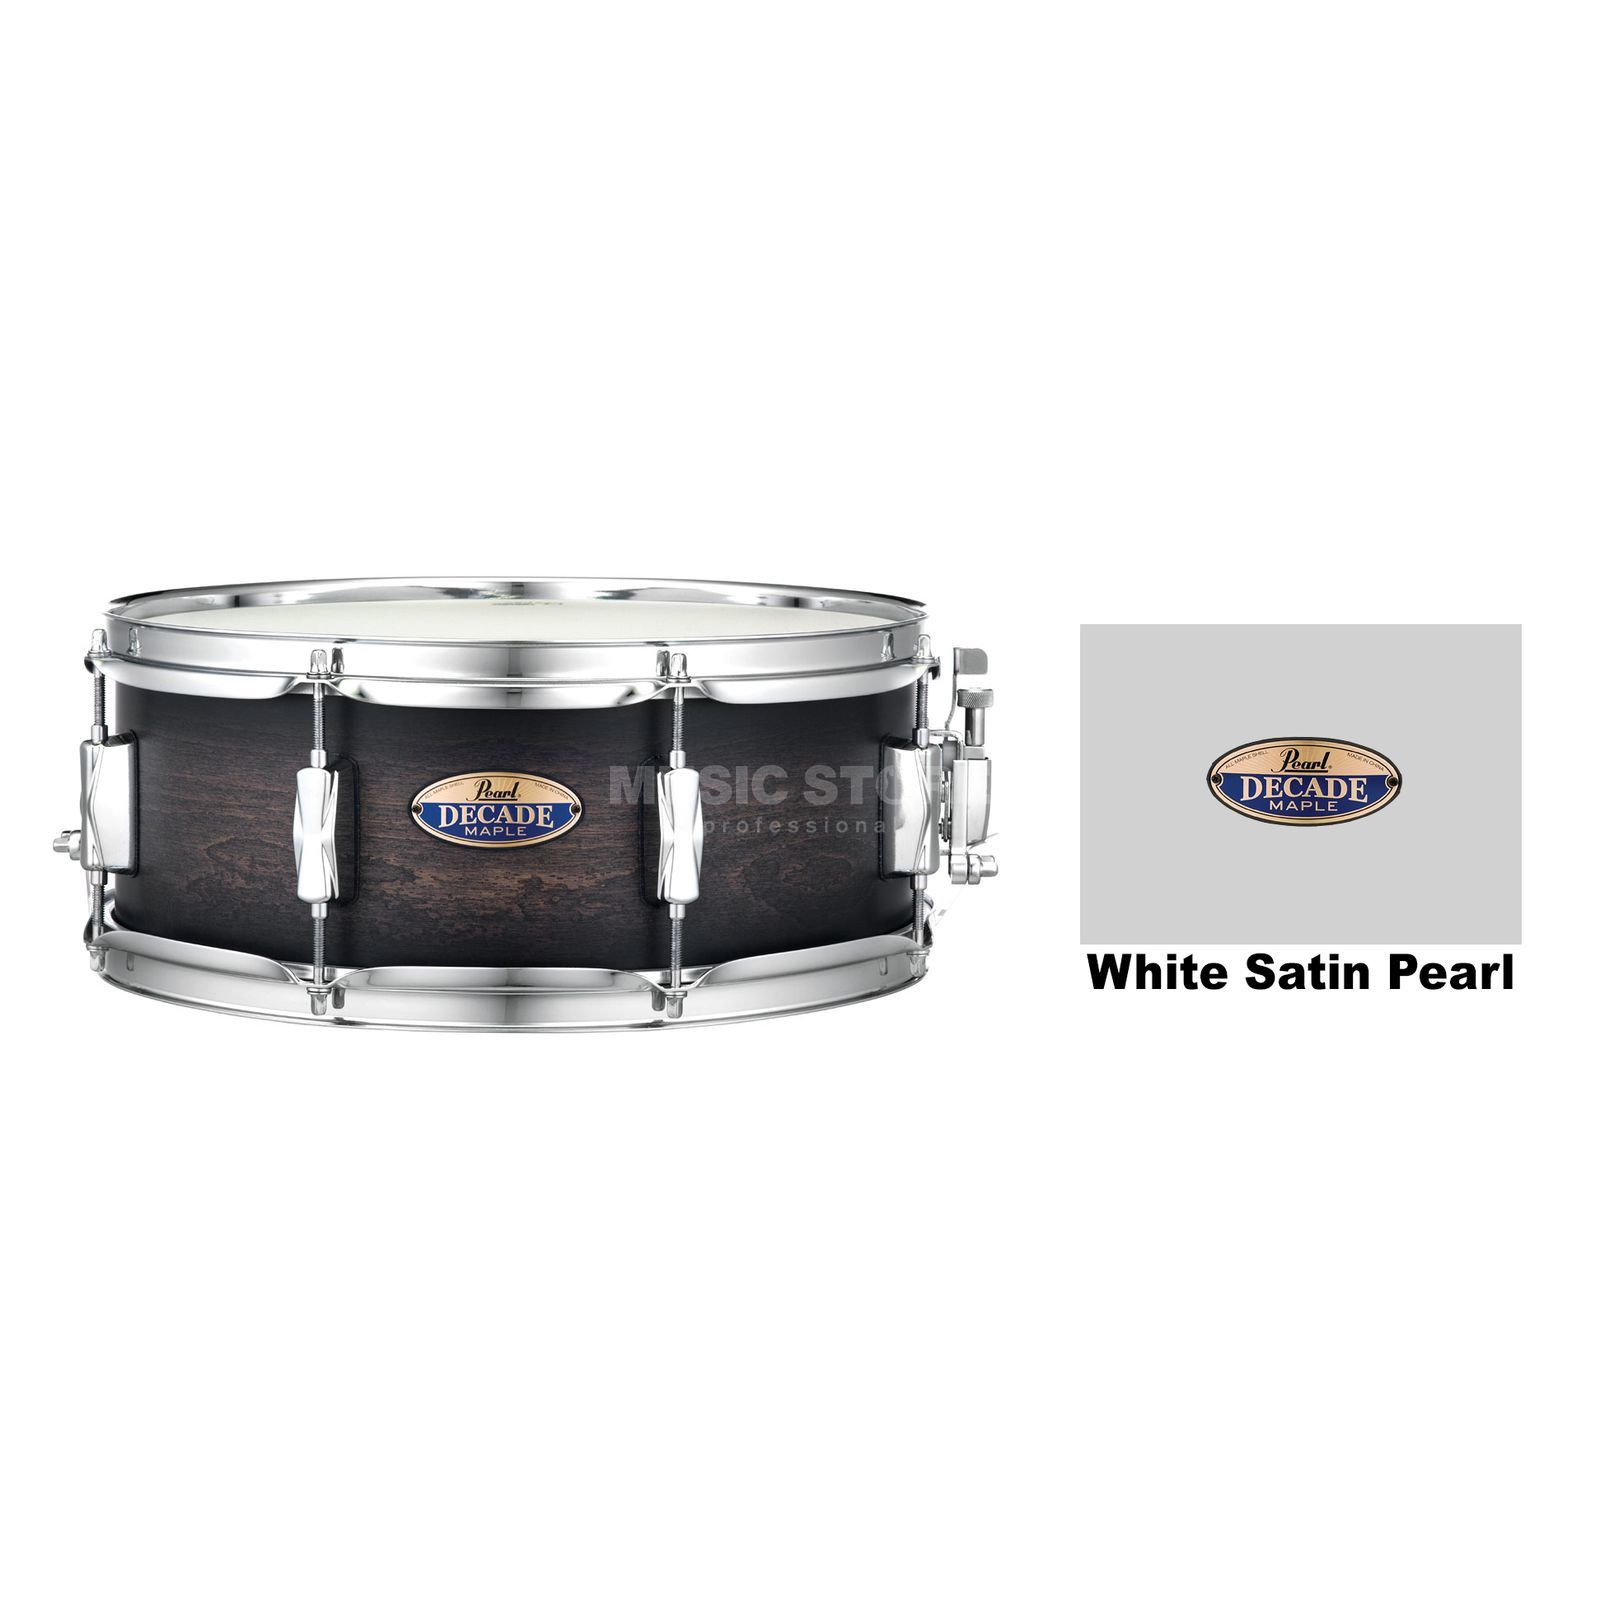 "Pearl Decade Maple Snare 14""x5,5"", White Satin Pearl #229 Product Image"